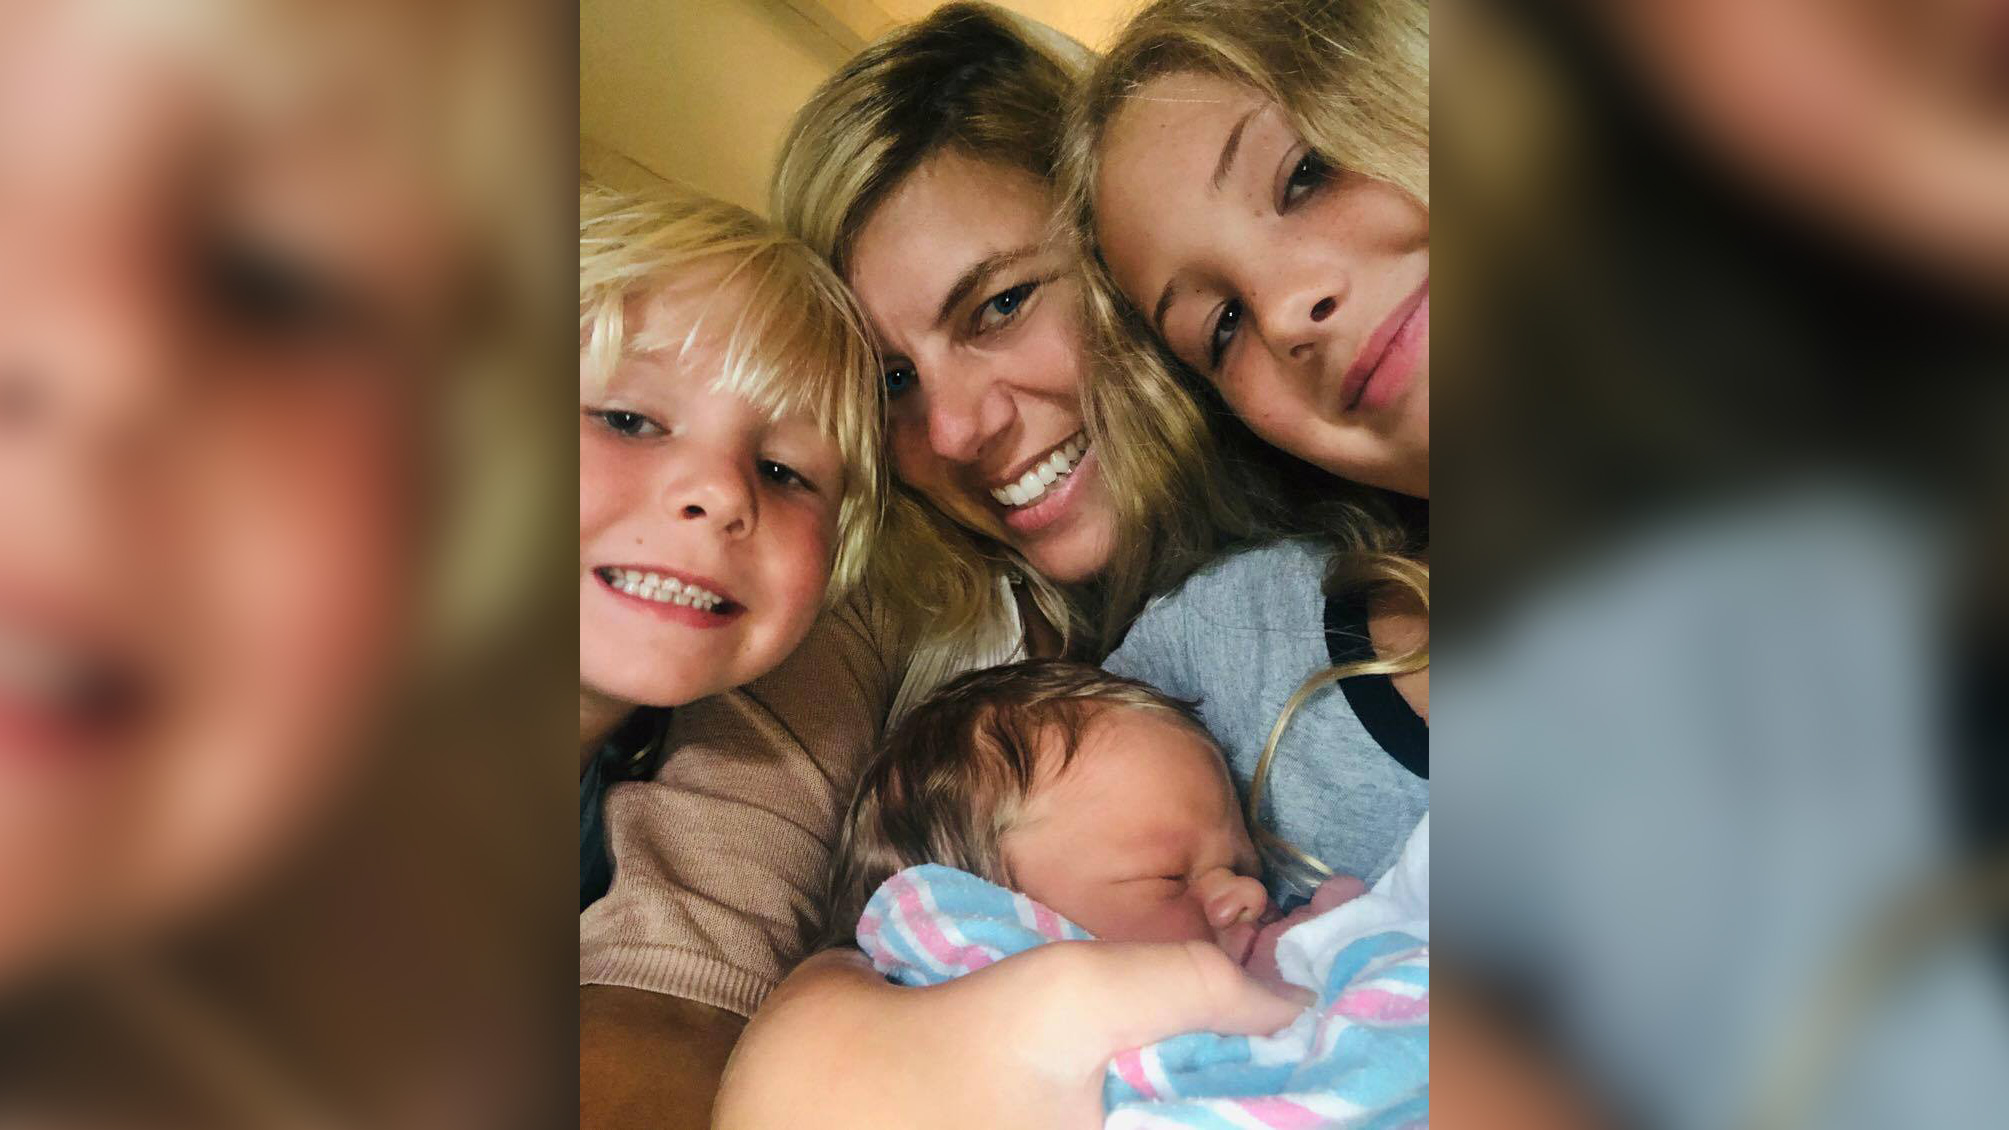 North Carolina TV anchor shares 'surreal' experience of raising newborn while entire family battles Covid-19